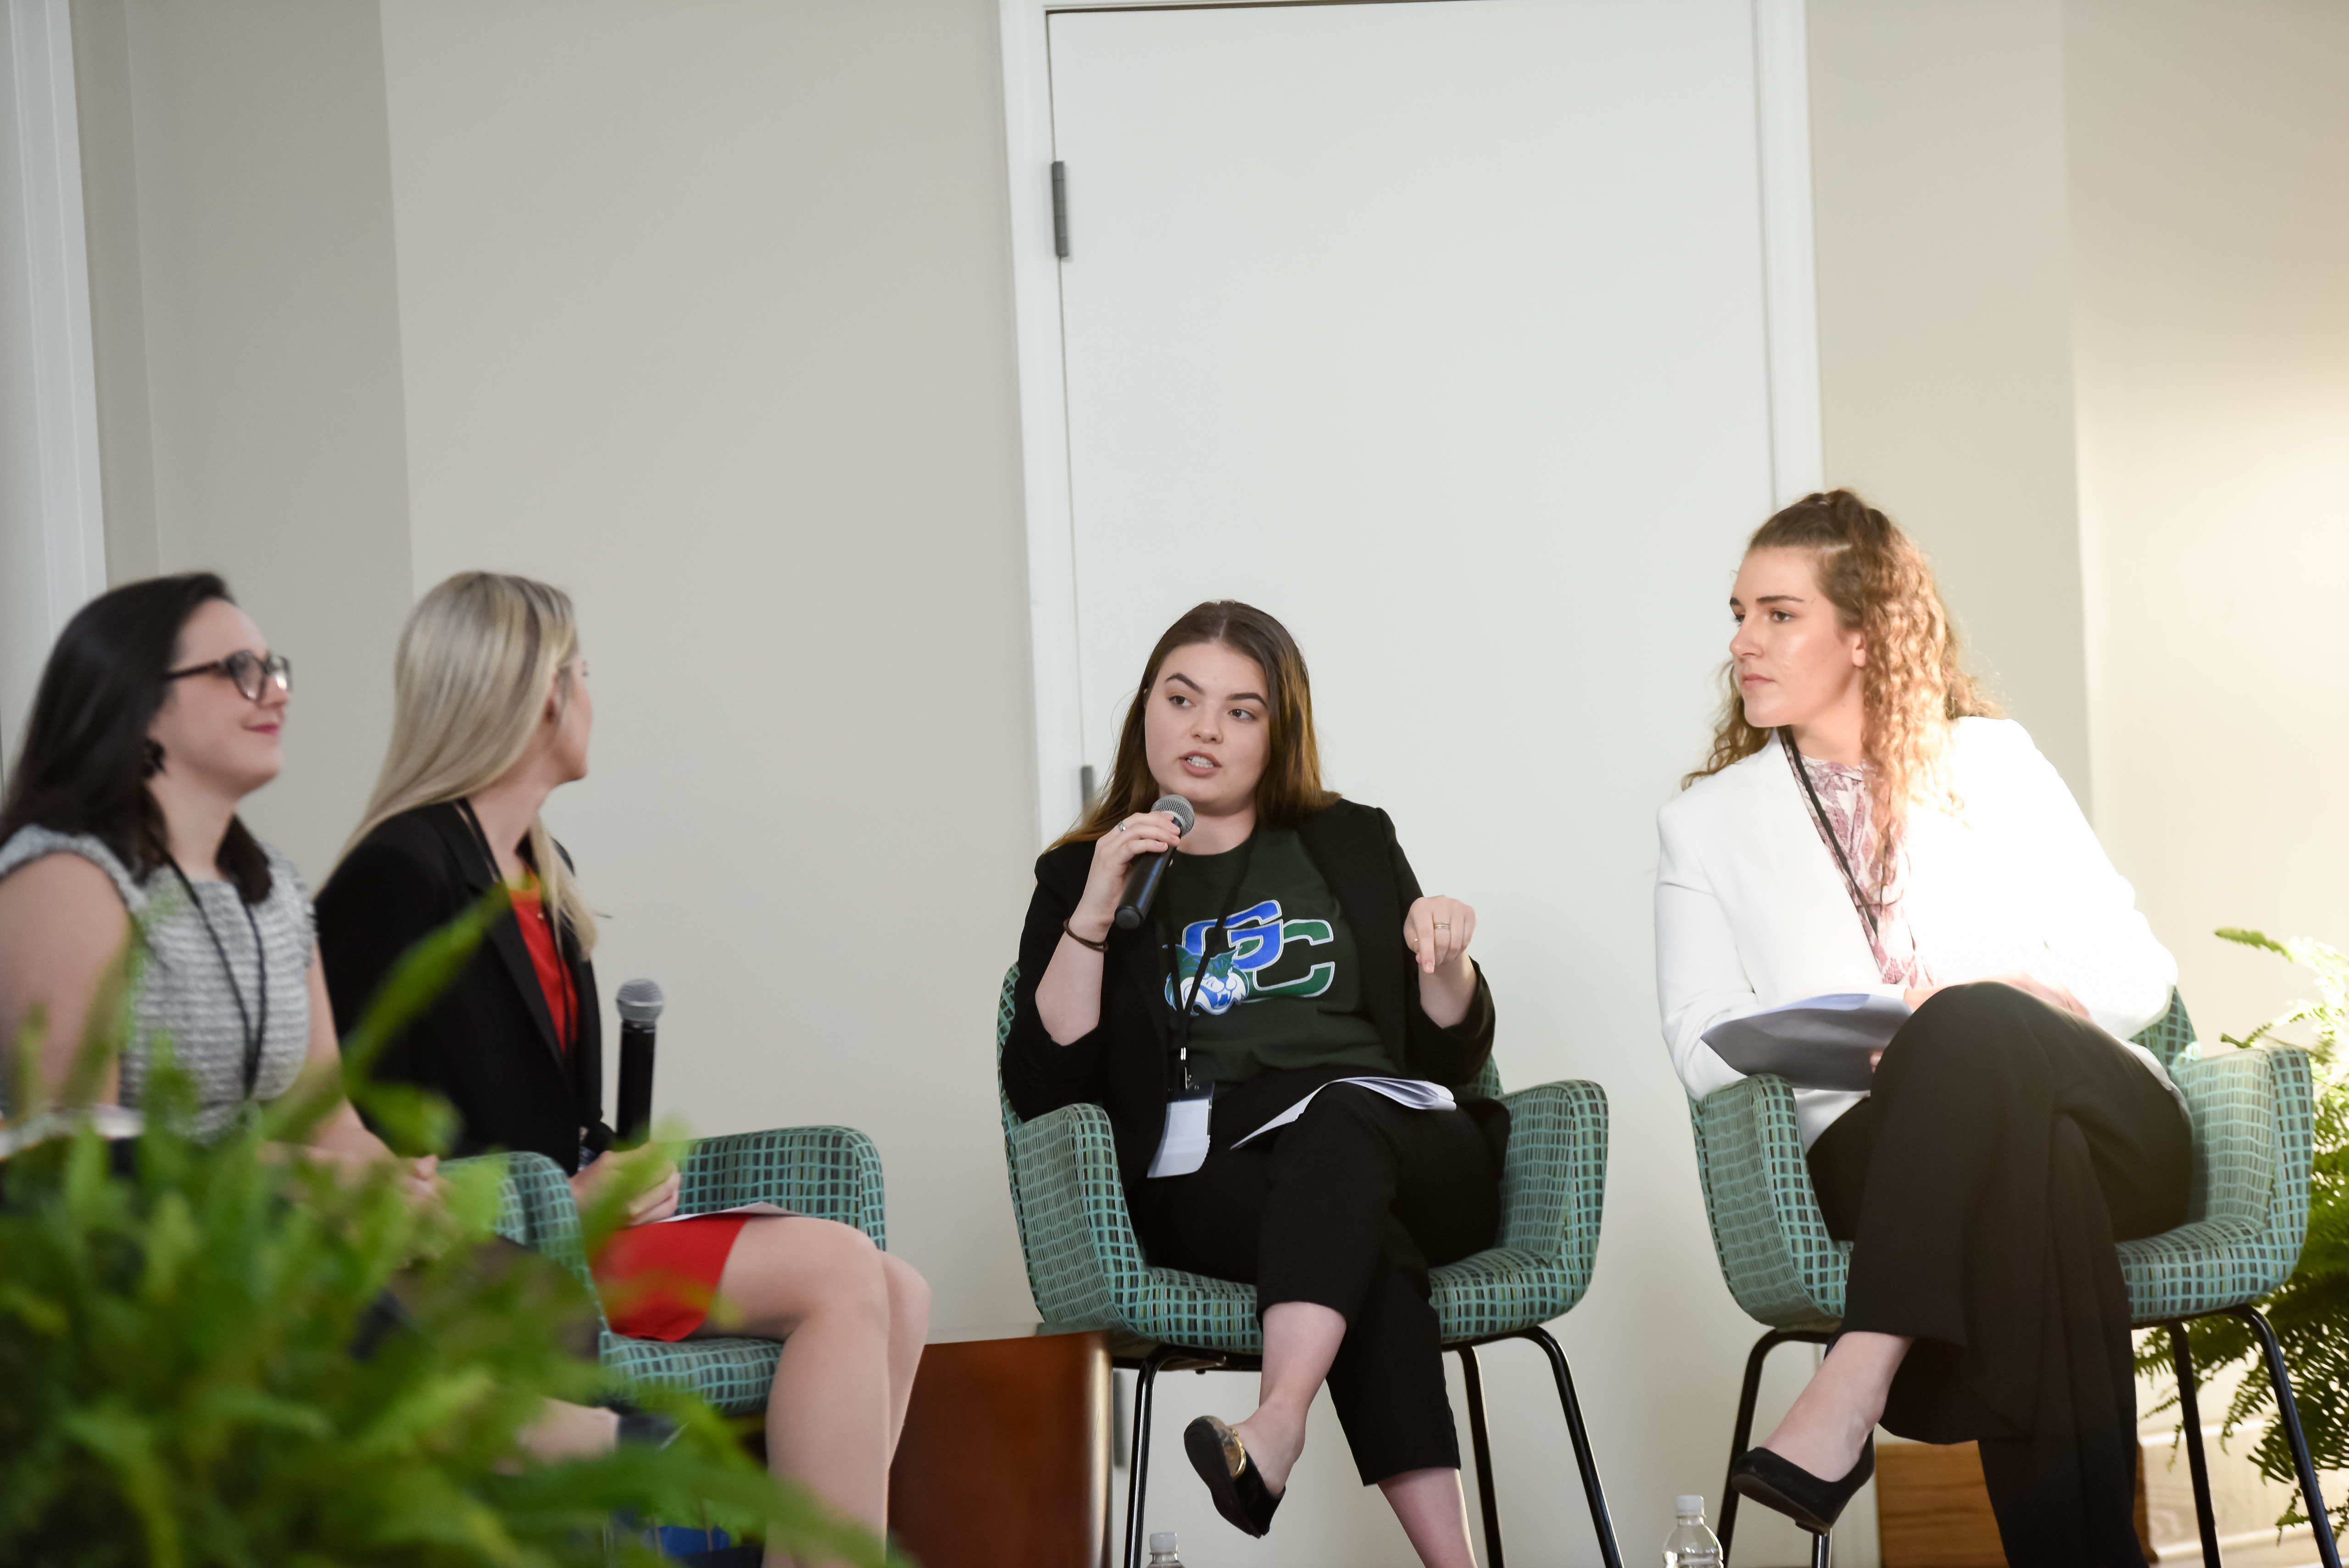 A panel discussion from the 2020 conference, which took place pre-COVID.